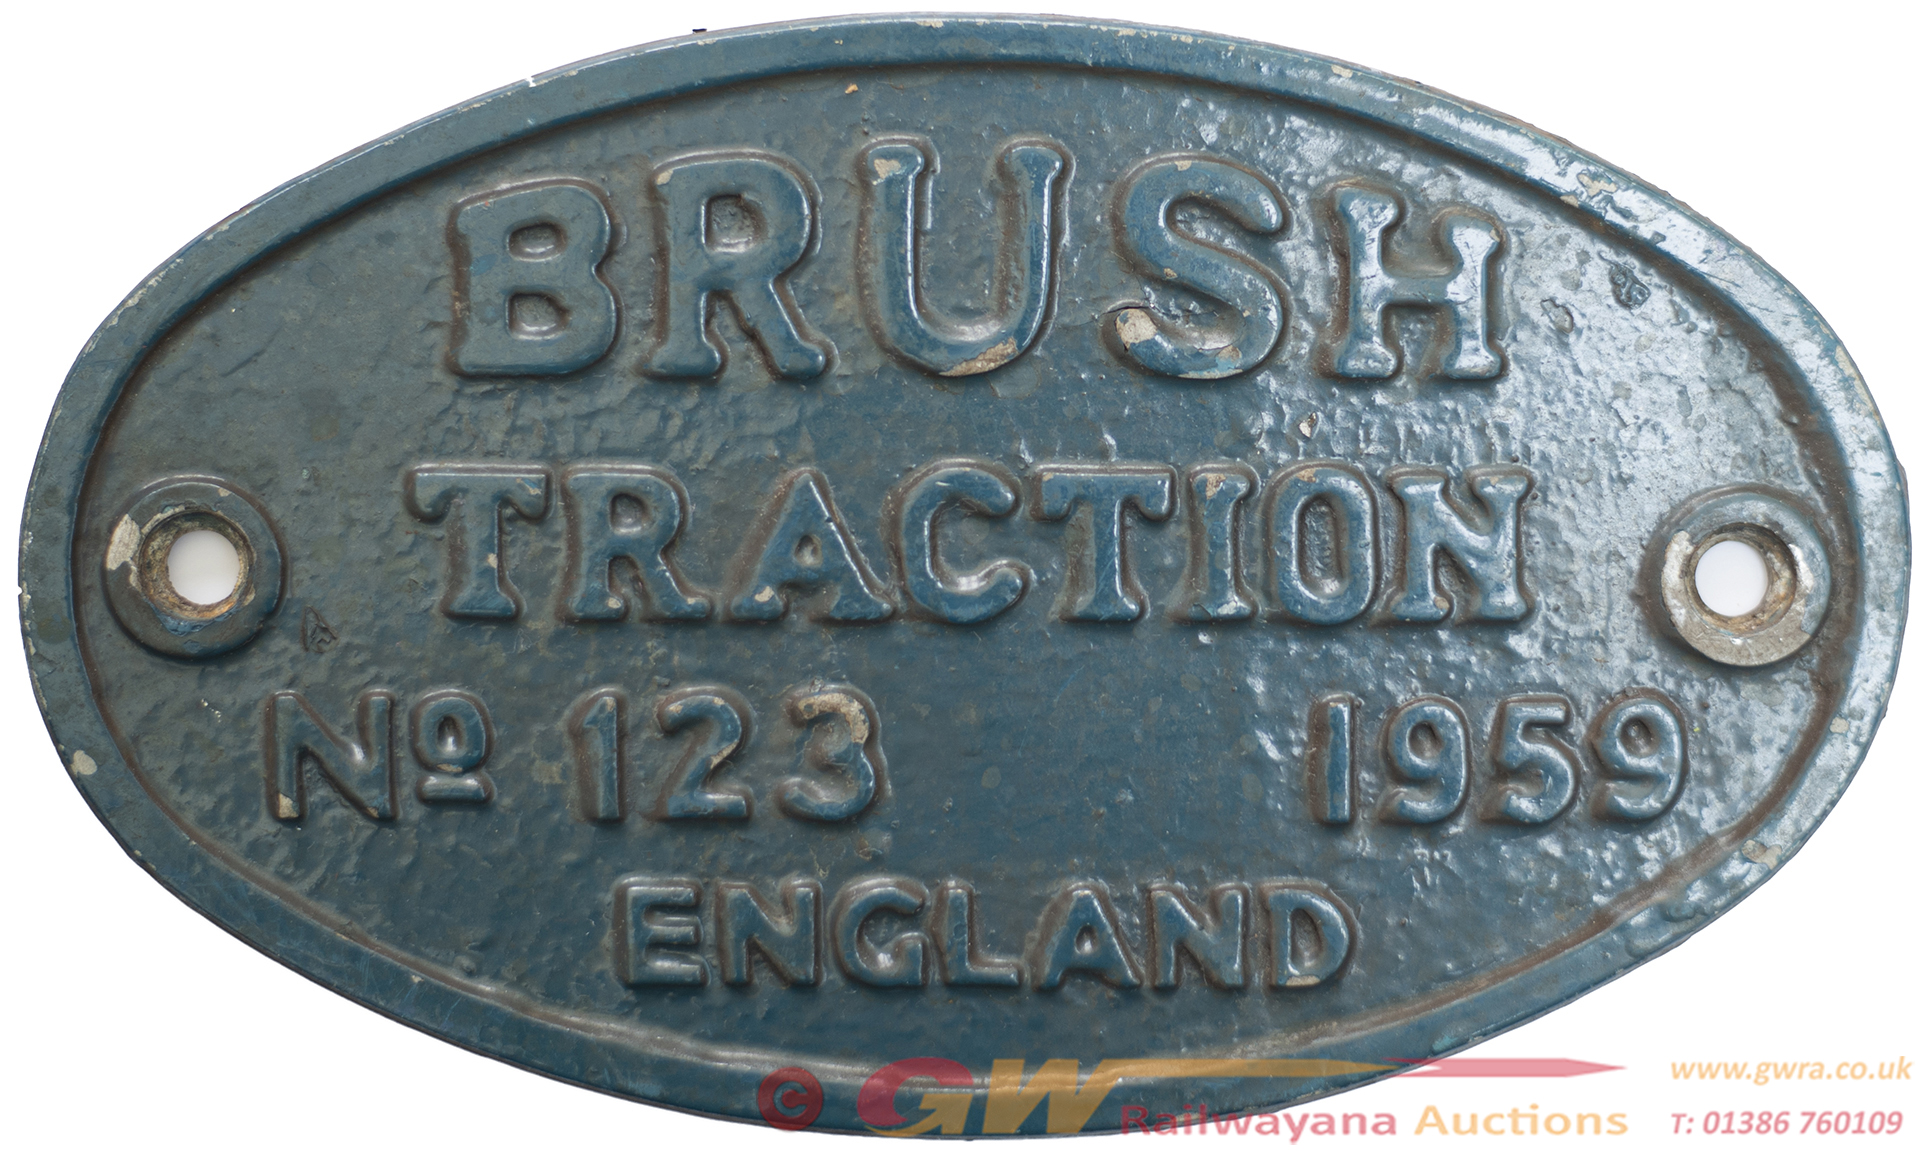 Worksplate BRUSH TRACTION ENGLAND No 123 1959 Ex